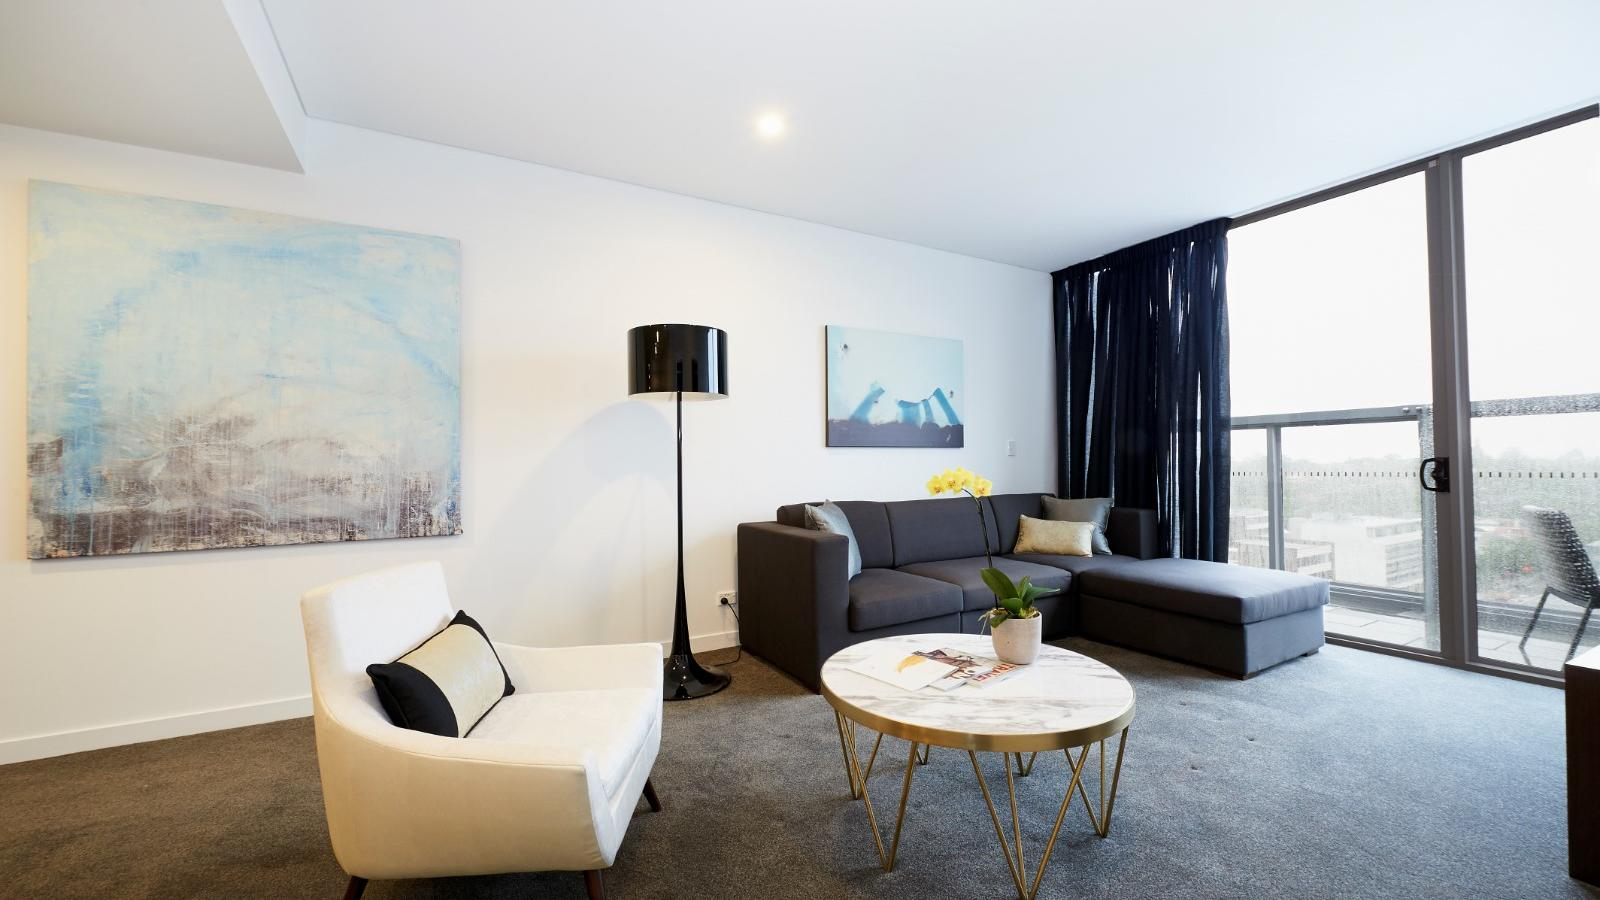 One Bedroom Executive Kitchen and Living Room at Silkari Suites Chatswood